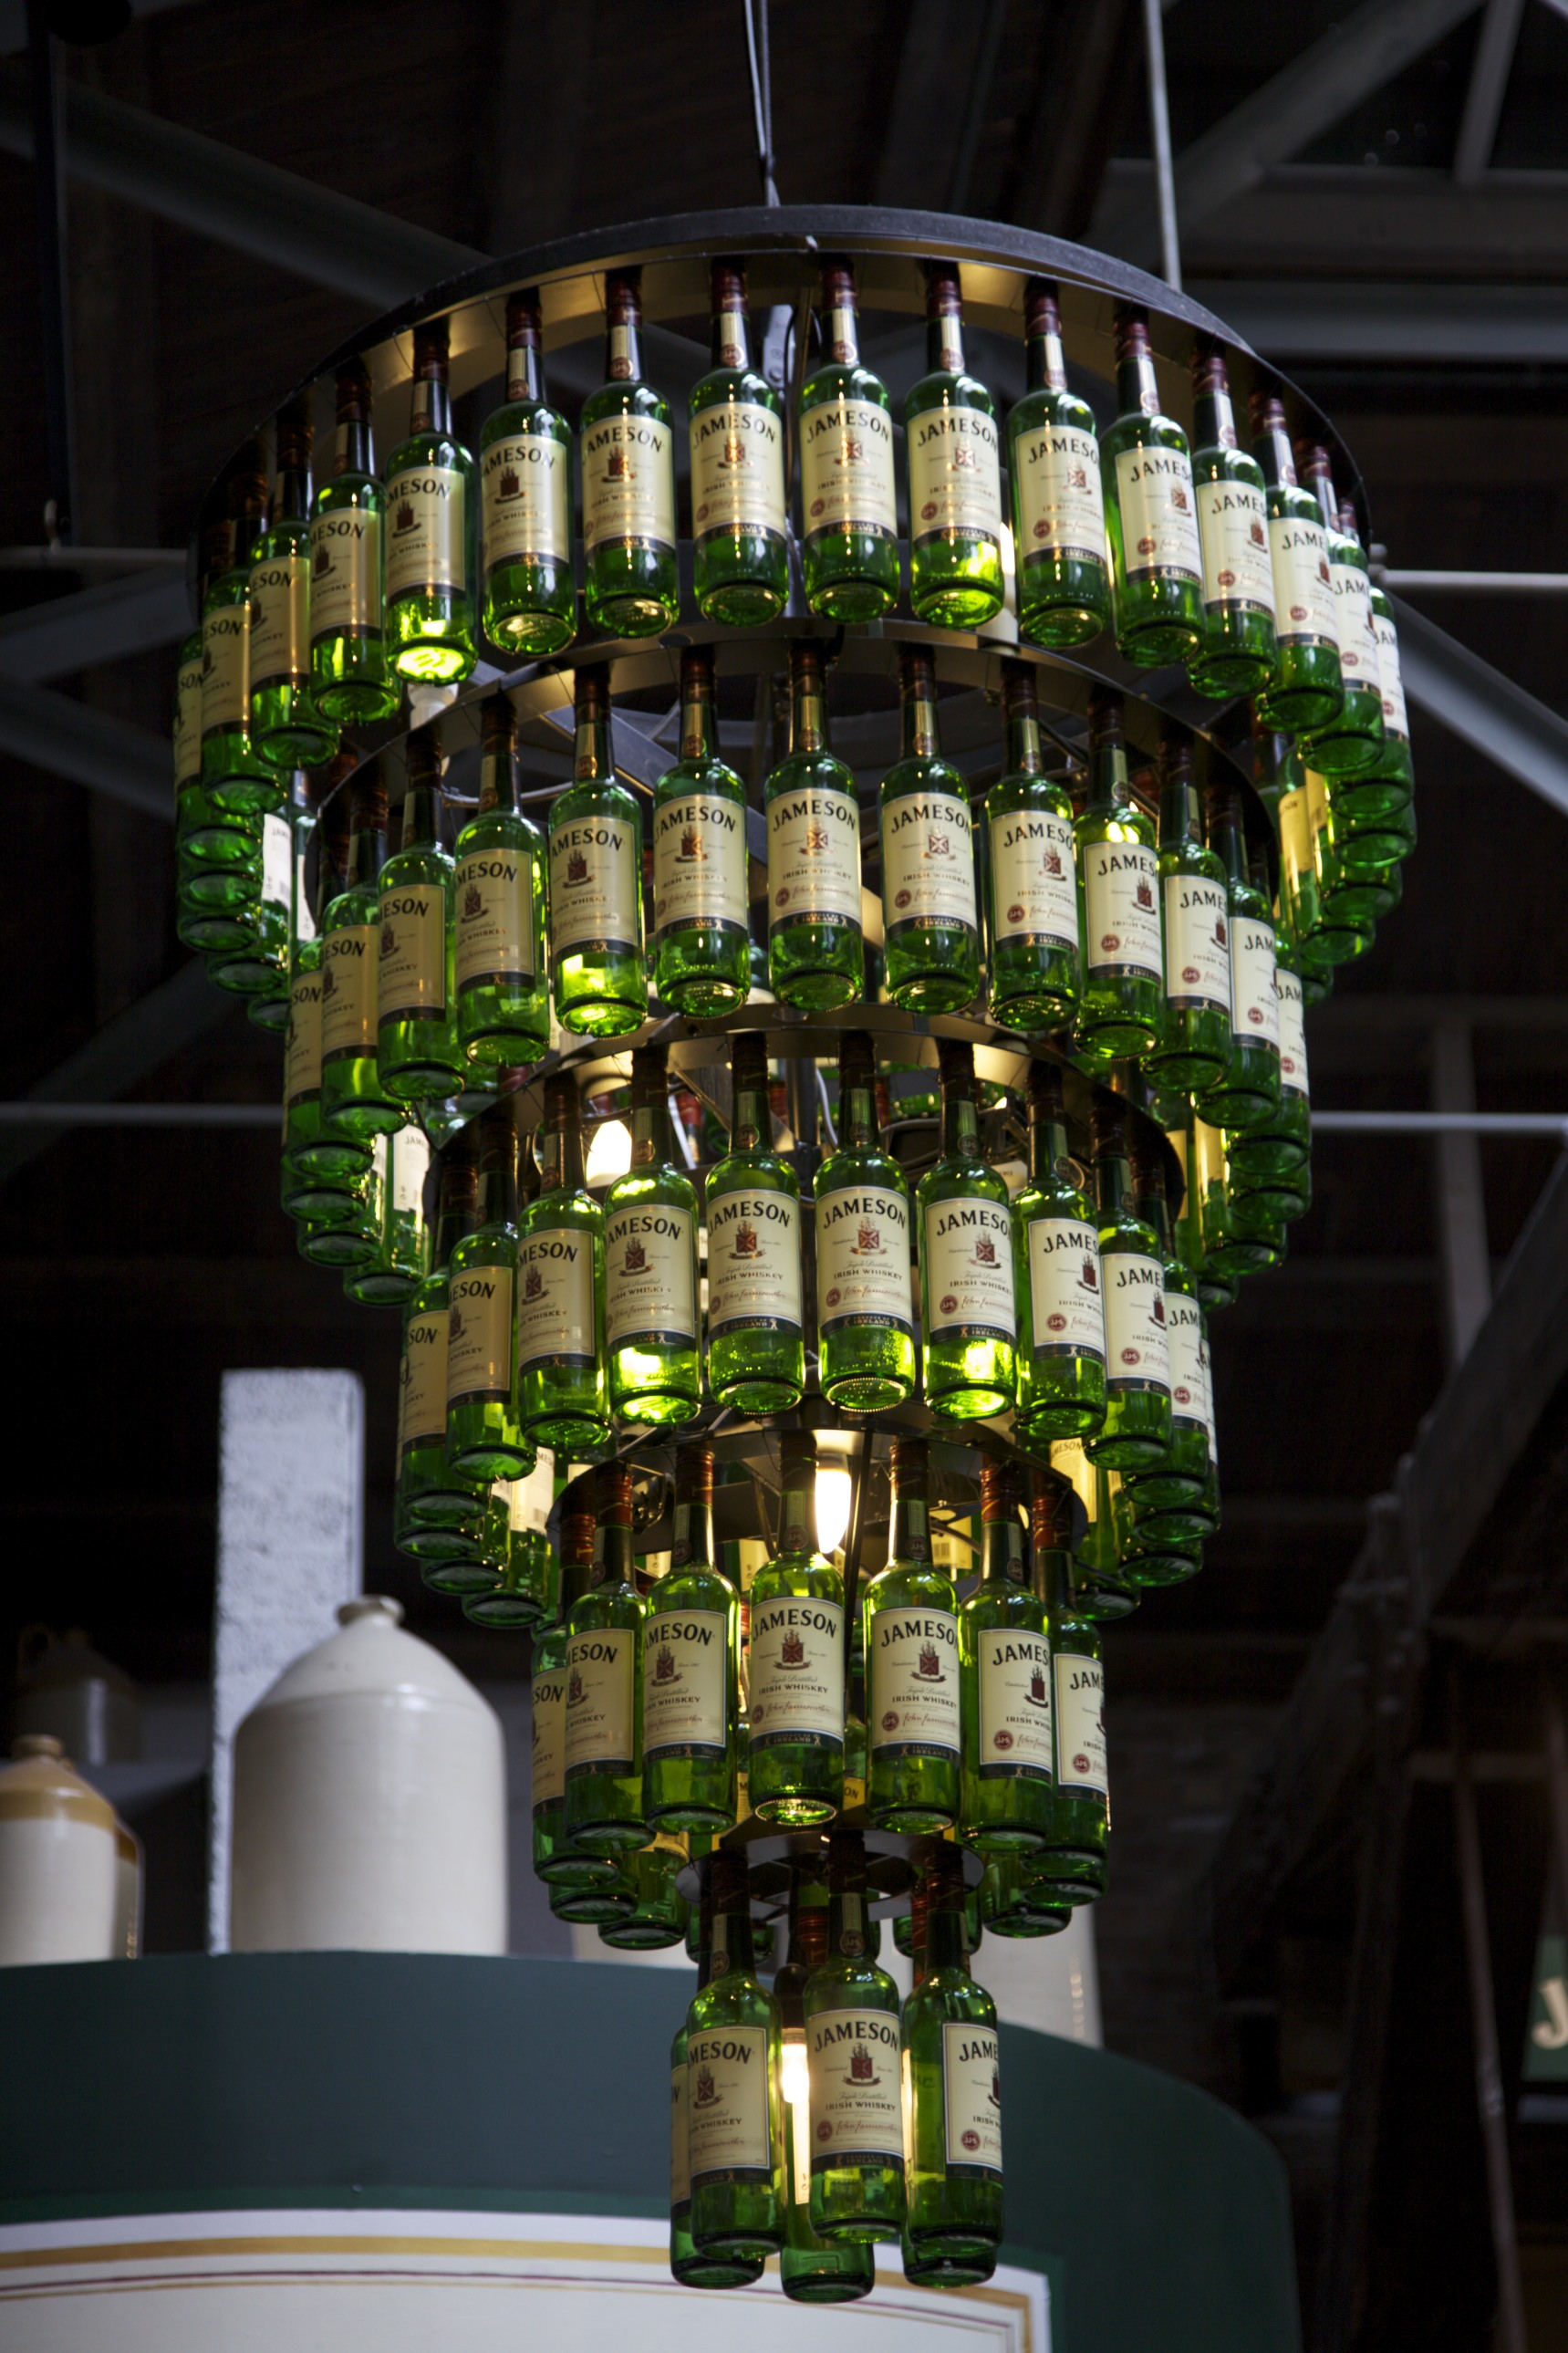 An alcoholic chandelier at the Jameson whiskey distillery.  (Dublin, Ireland.)